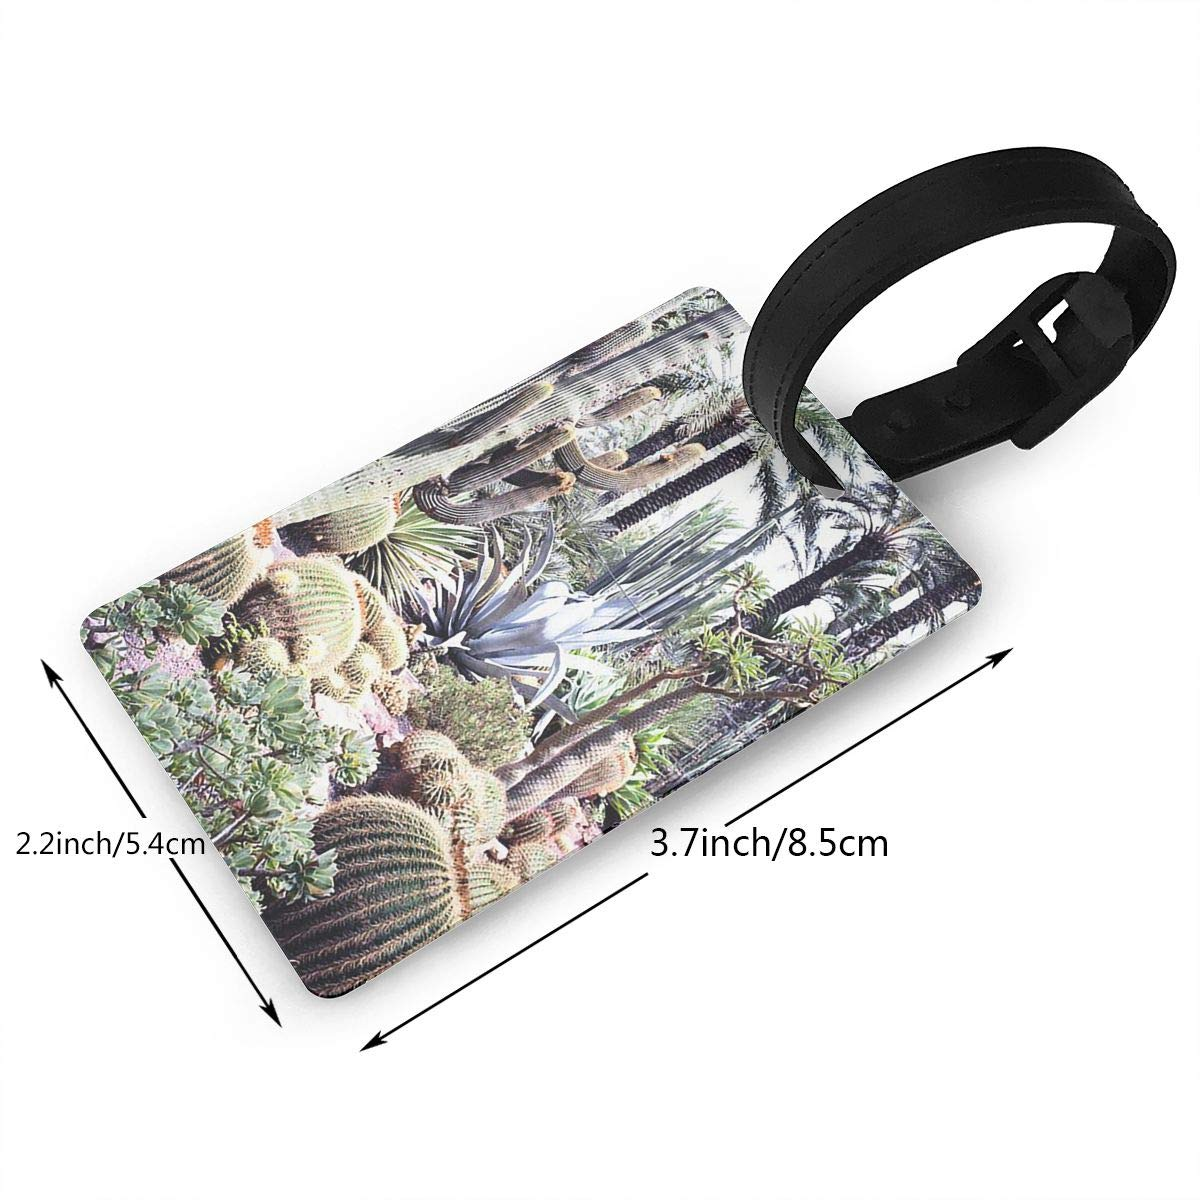 2 Pack Luggage Tags Cactus Cacti Baggage Tag For Suitcase Bag Accessories